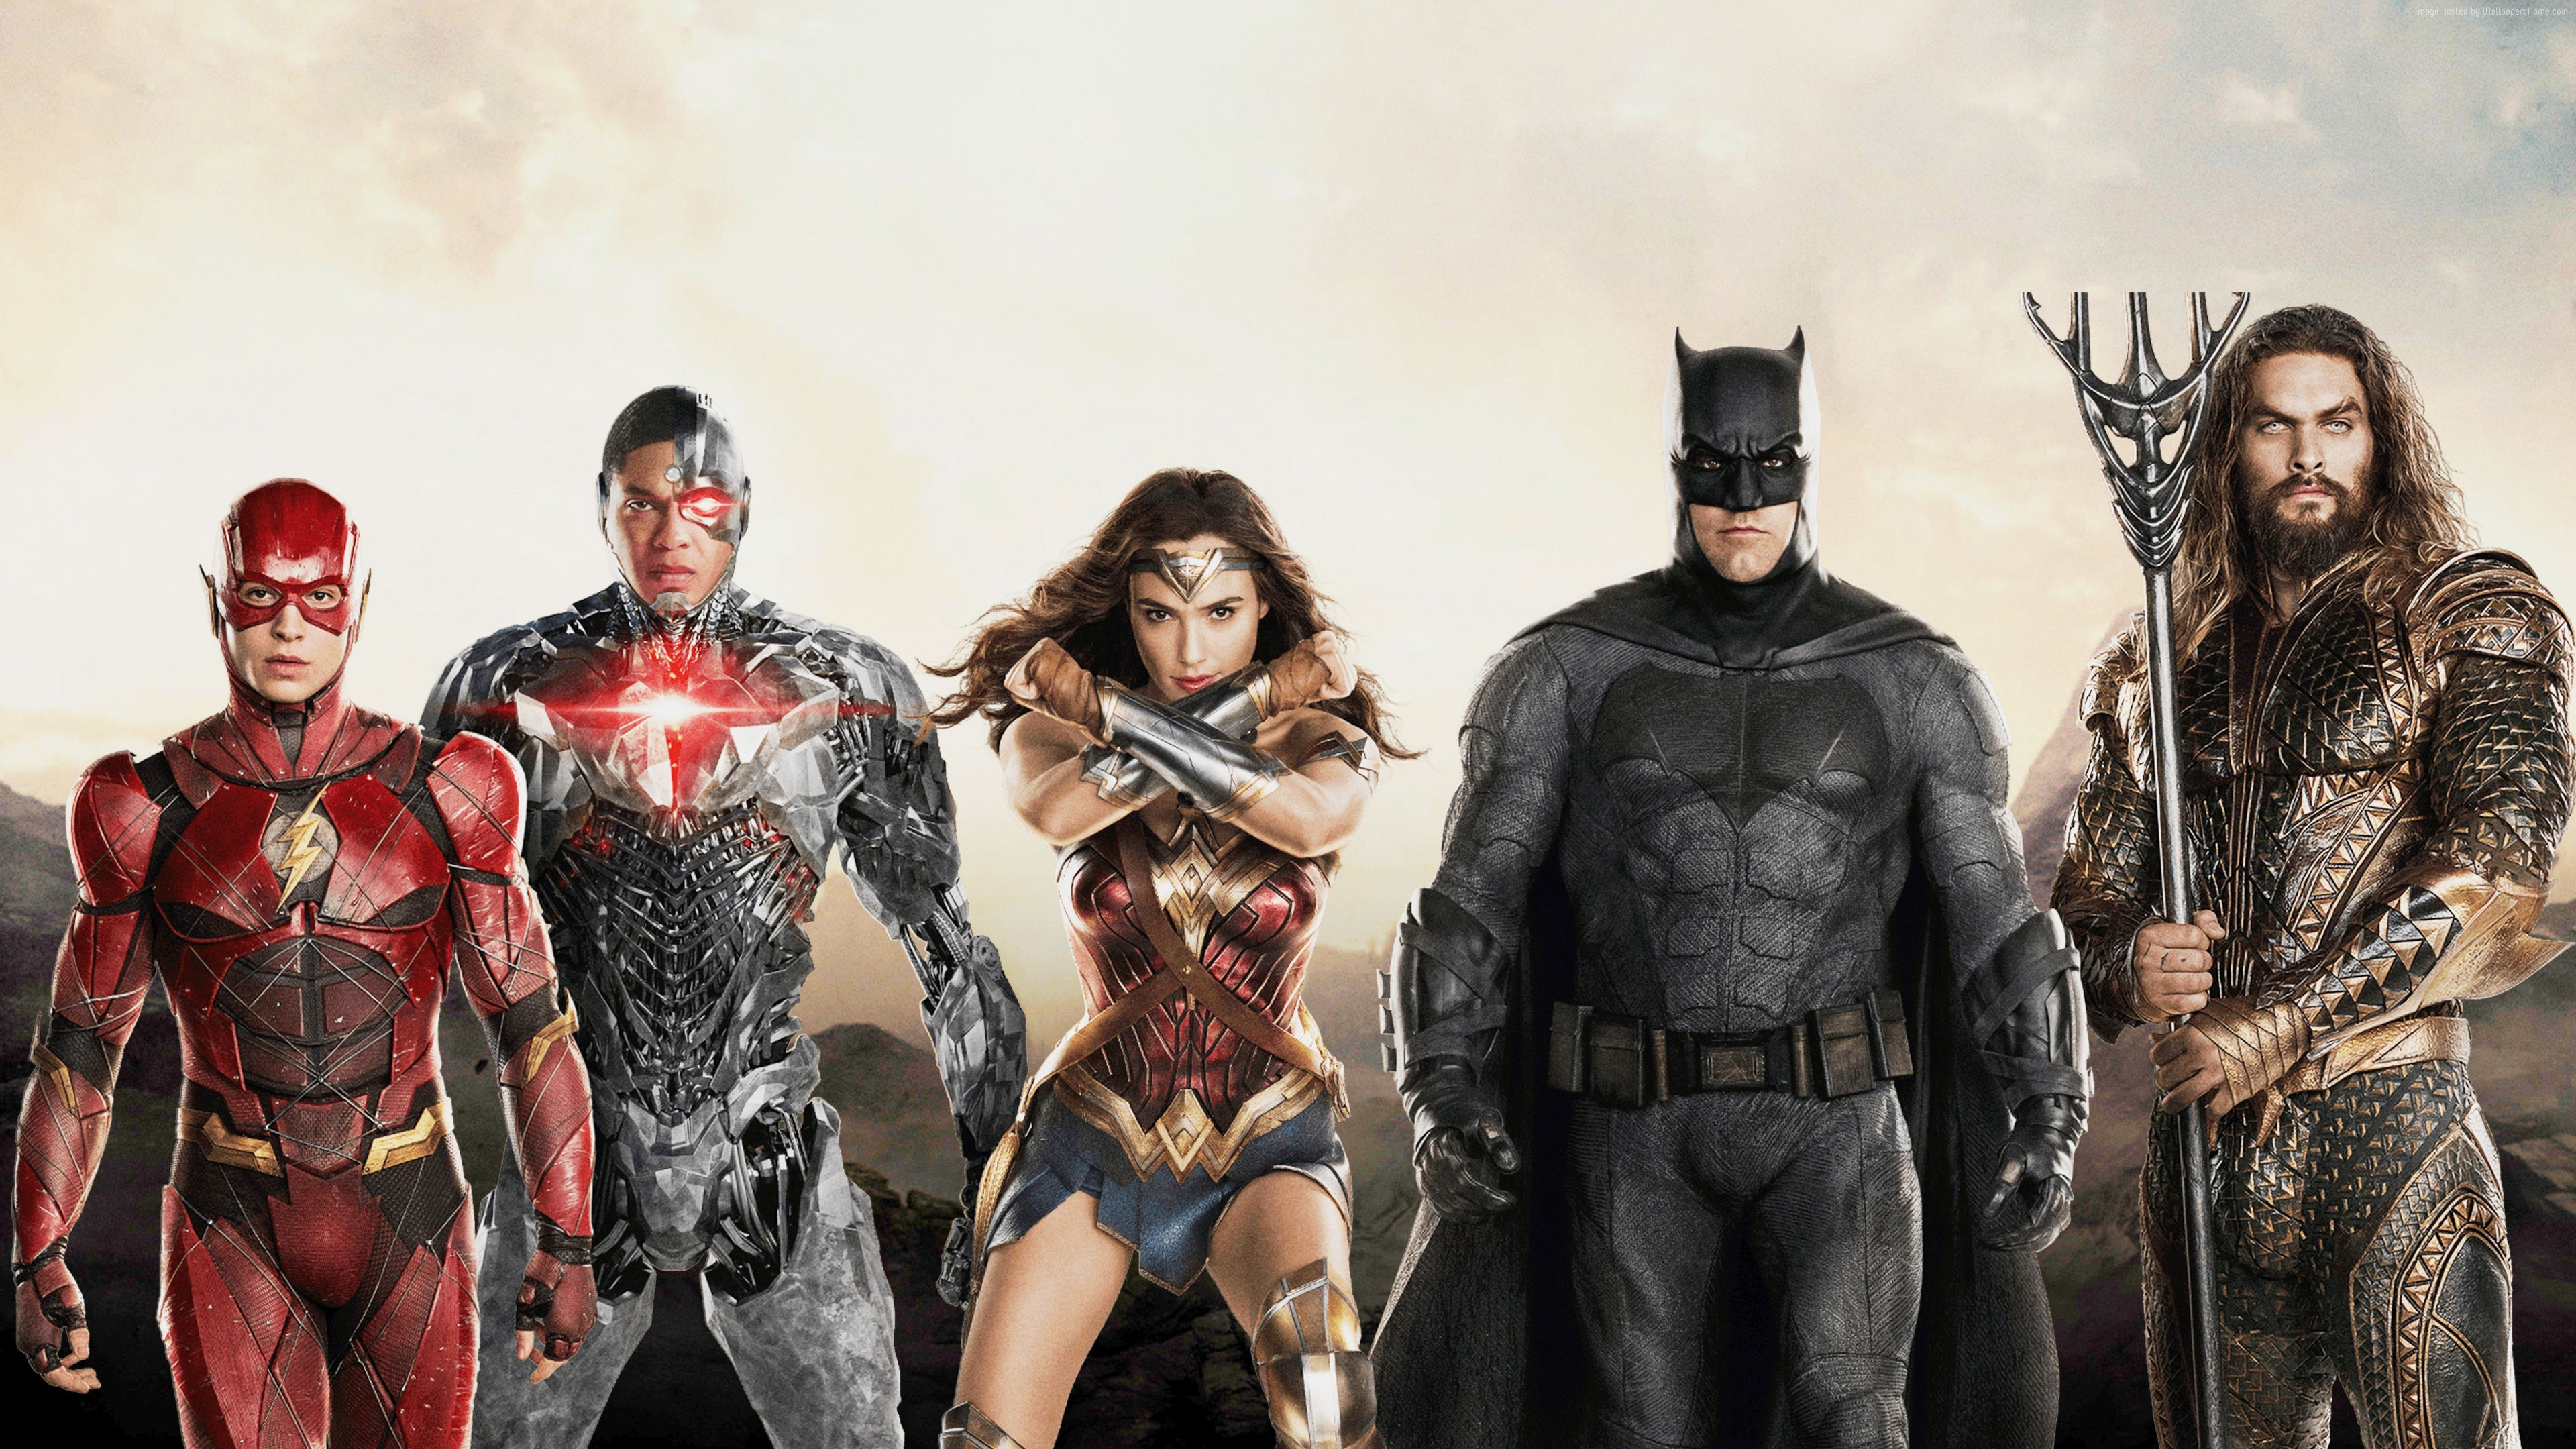 3840x2160 Your Resolution: 1024x1024. Available Resolutions: PC Mac Android iOS  Custom. Tags: Justice League ...